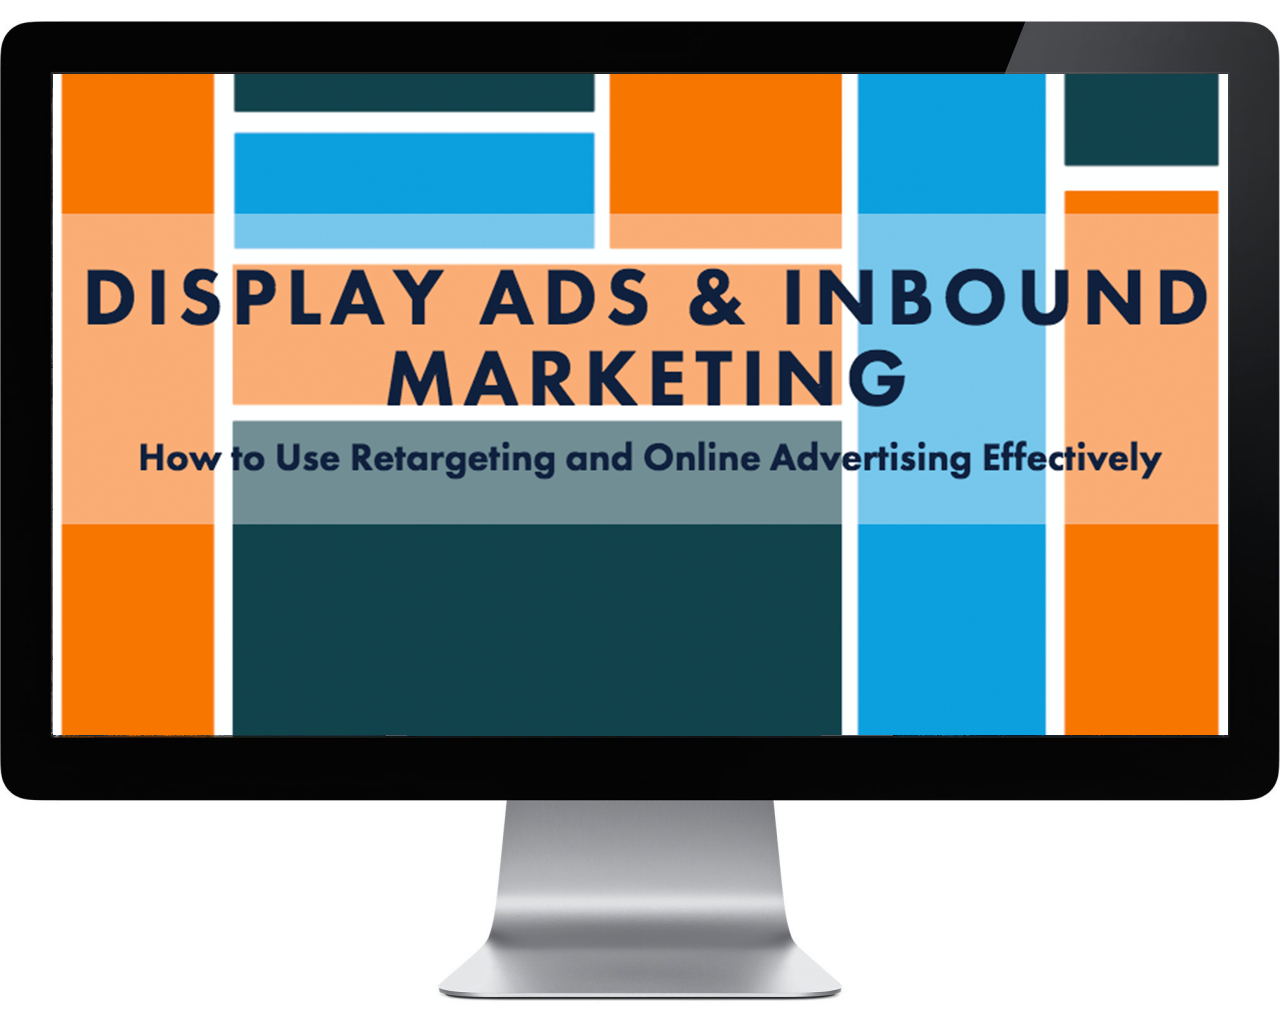 Display Ads and Inbound Marketing